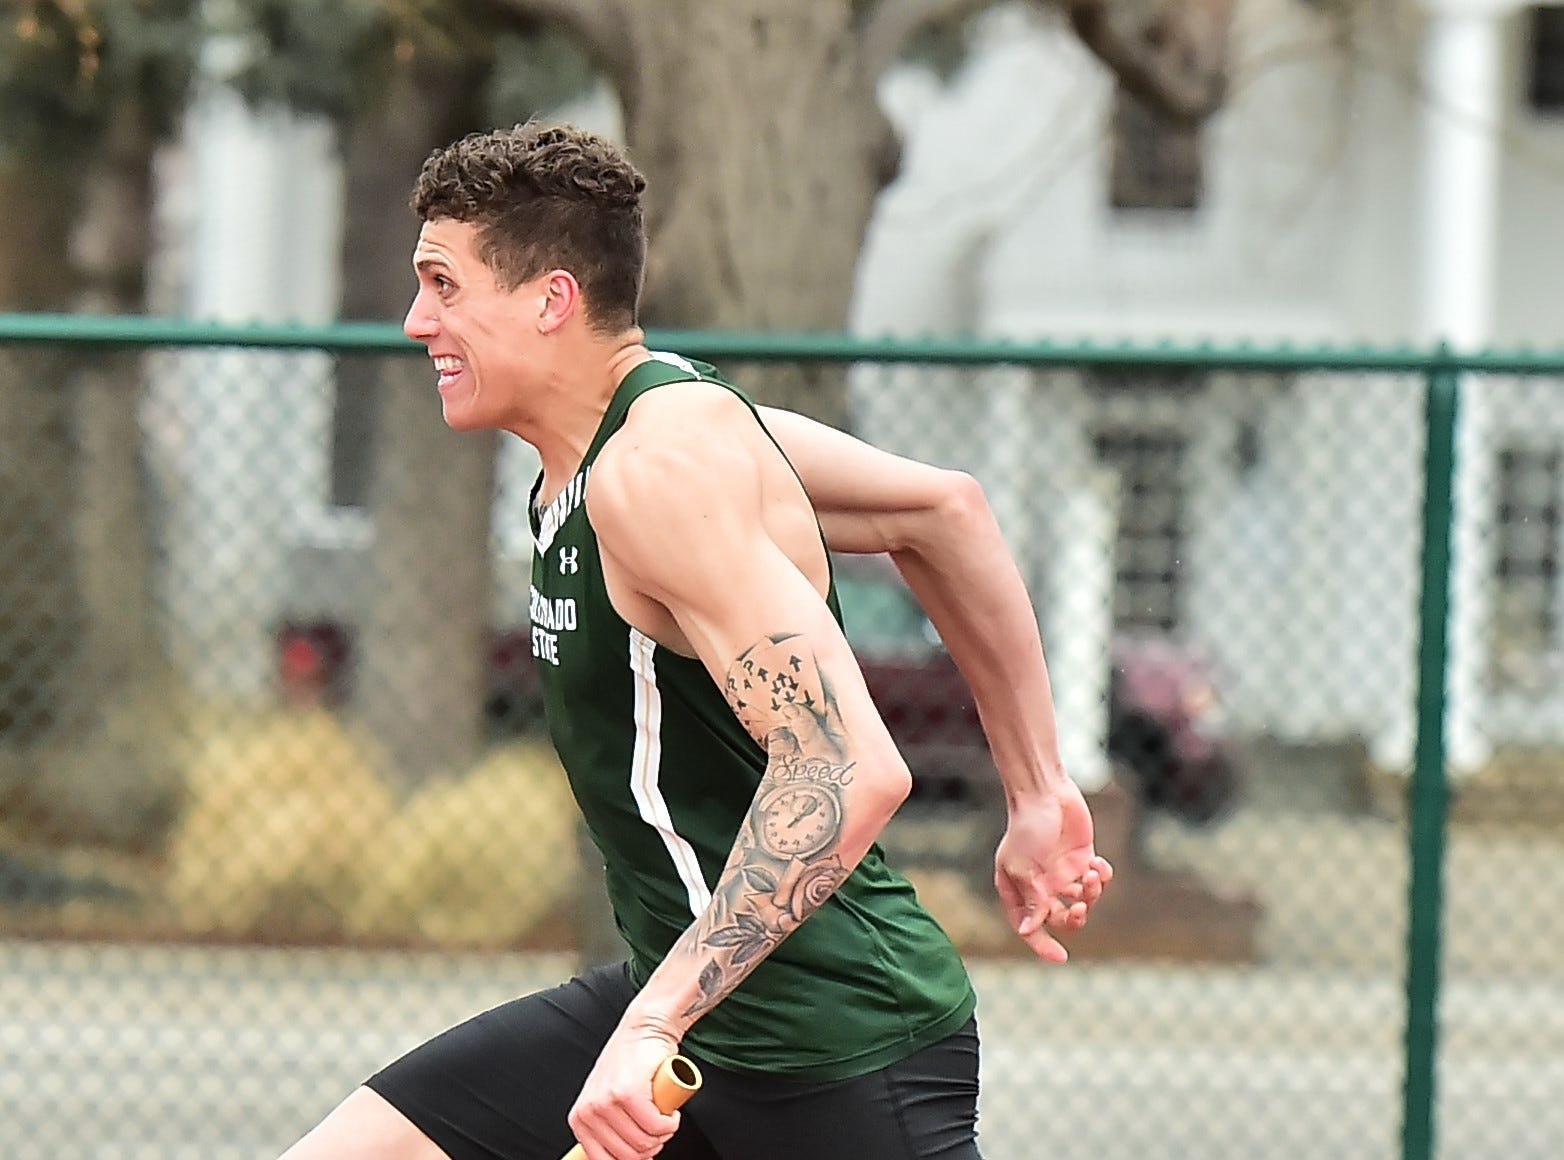 CSU's Caleb Hardy runs the second leg in the 4x100-meter relay on Saturday, March 23, 2019, in the Fum McGraw Open at Colorado State University's Jack Christiansen Track.